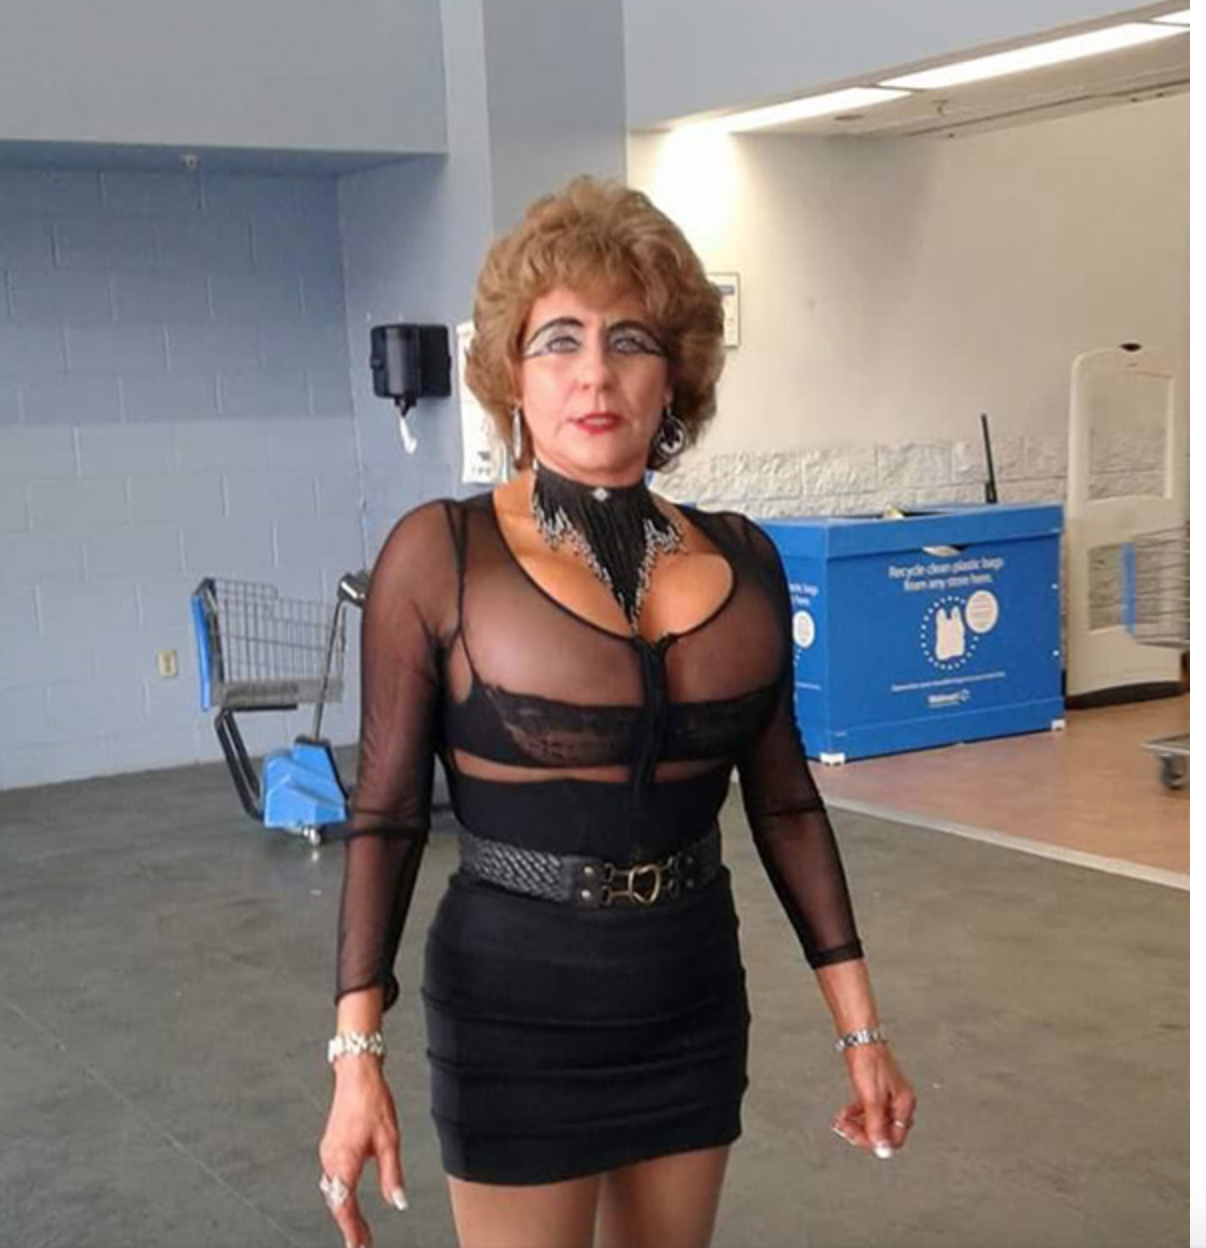 Pin on weird Outrageous Outfits On Walmart Shoppers